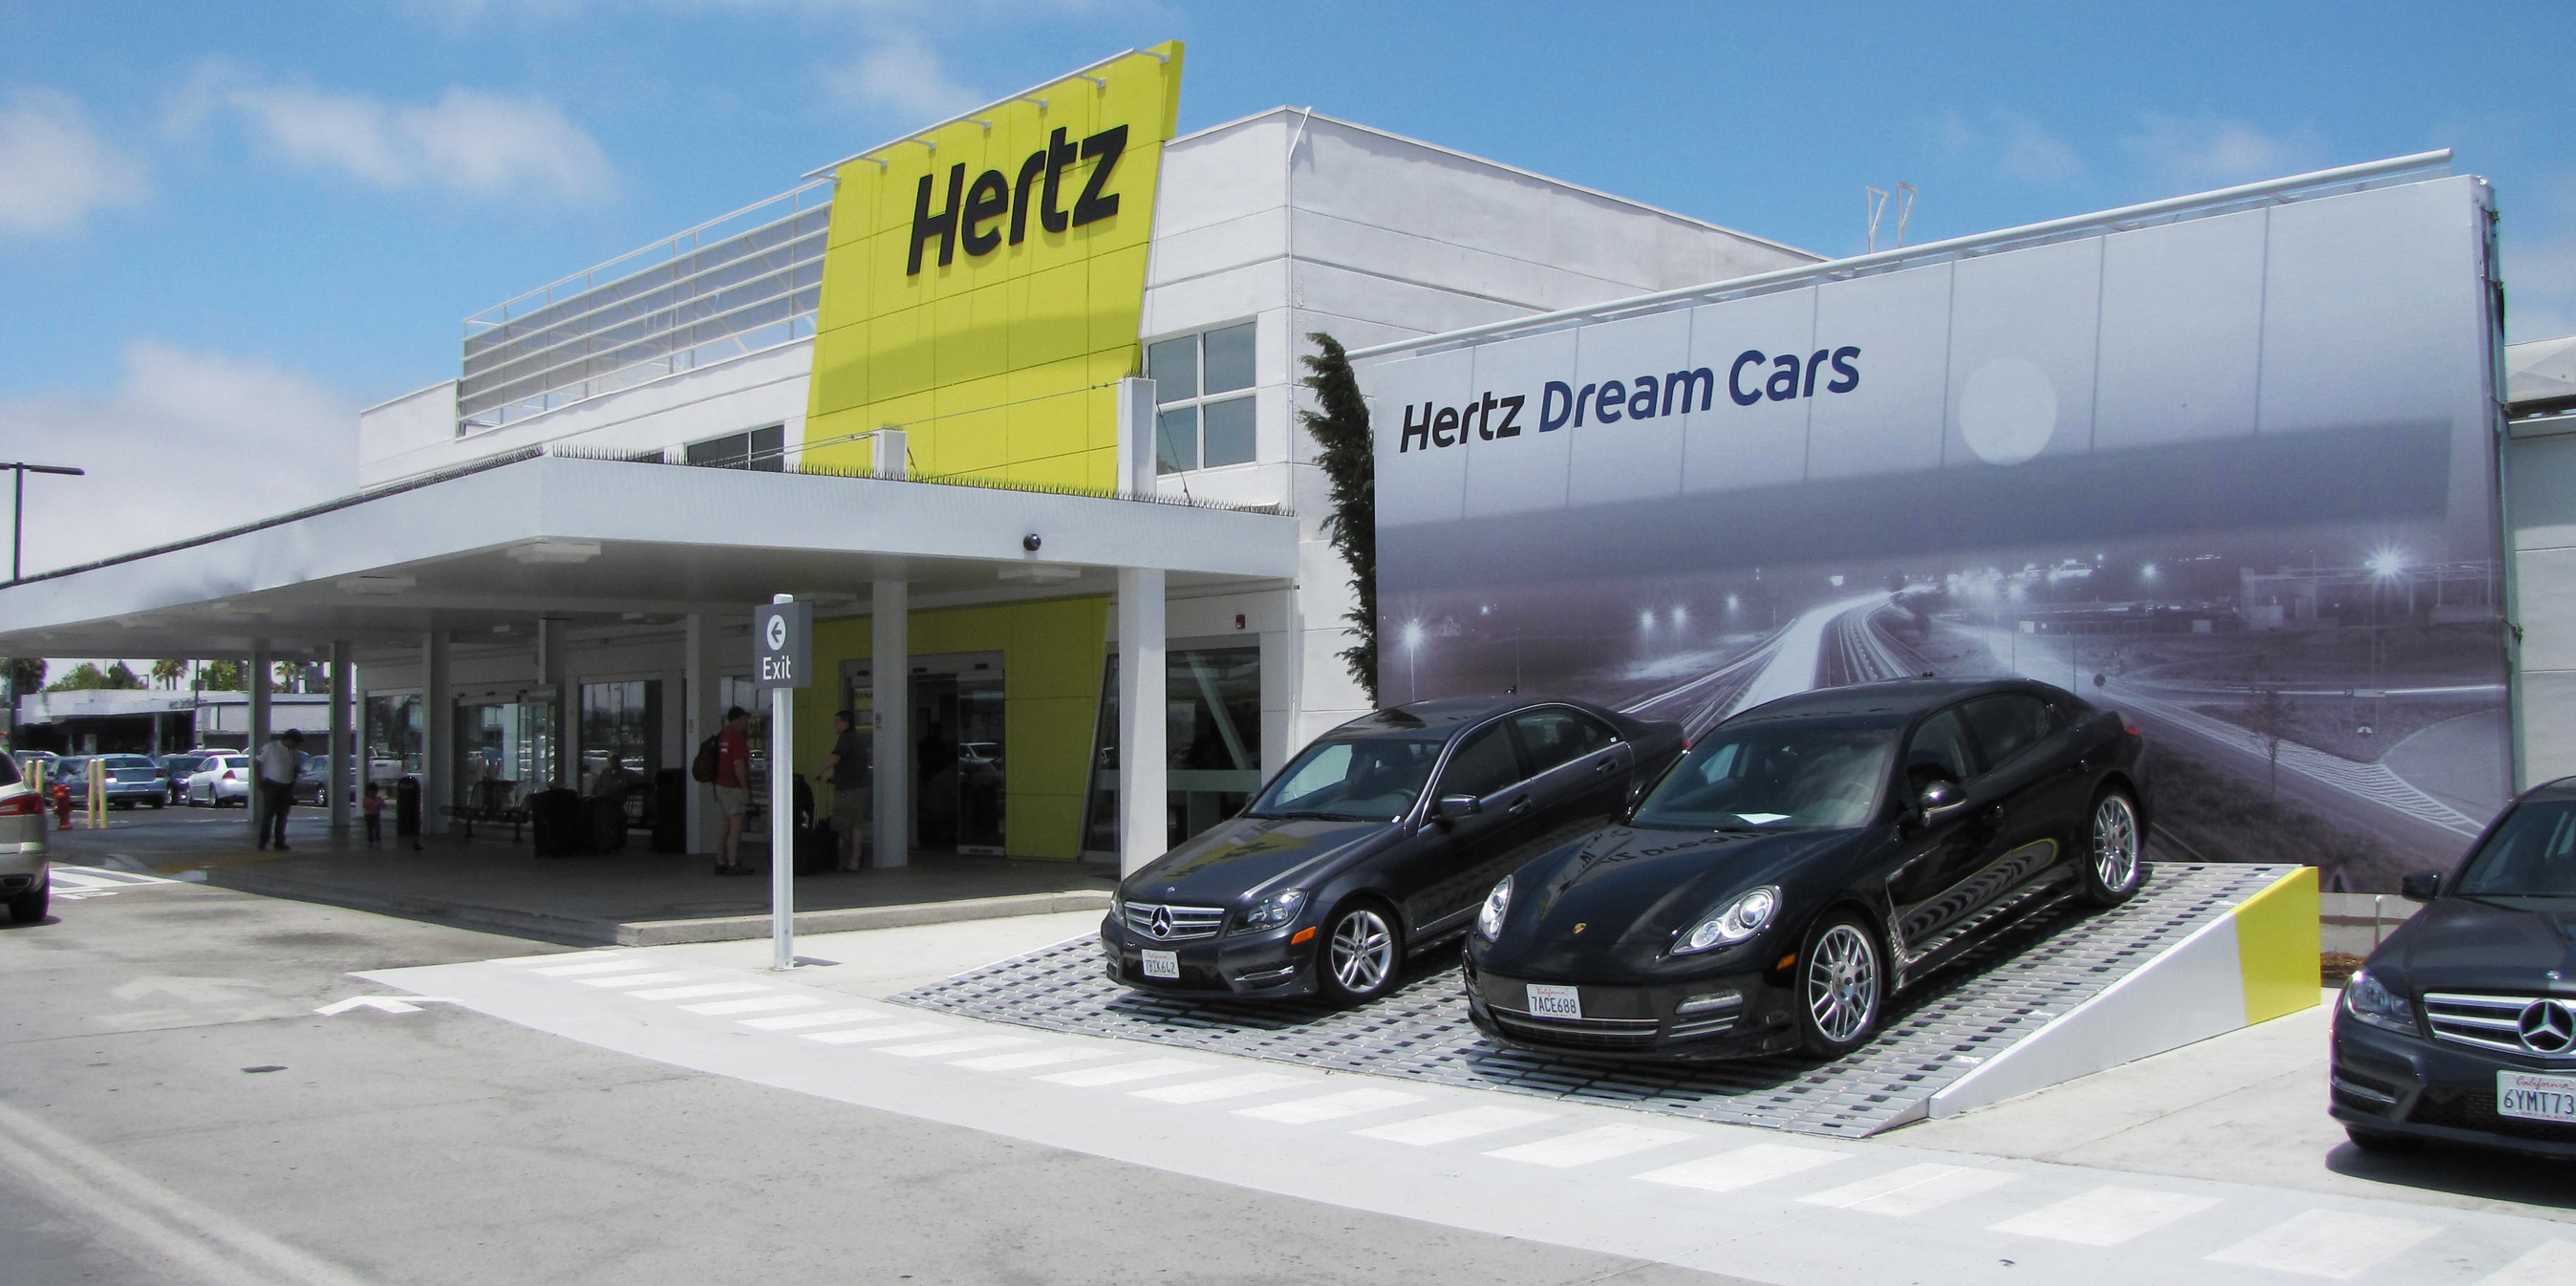 The Hertz in Los Angeles provides you with the freedom to explore the City of Angels on your own watch. When you look up the Hertz LAX street address associated with the rental facility, you'll find it conveniently located on-site at the airport.